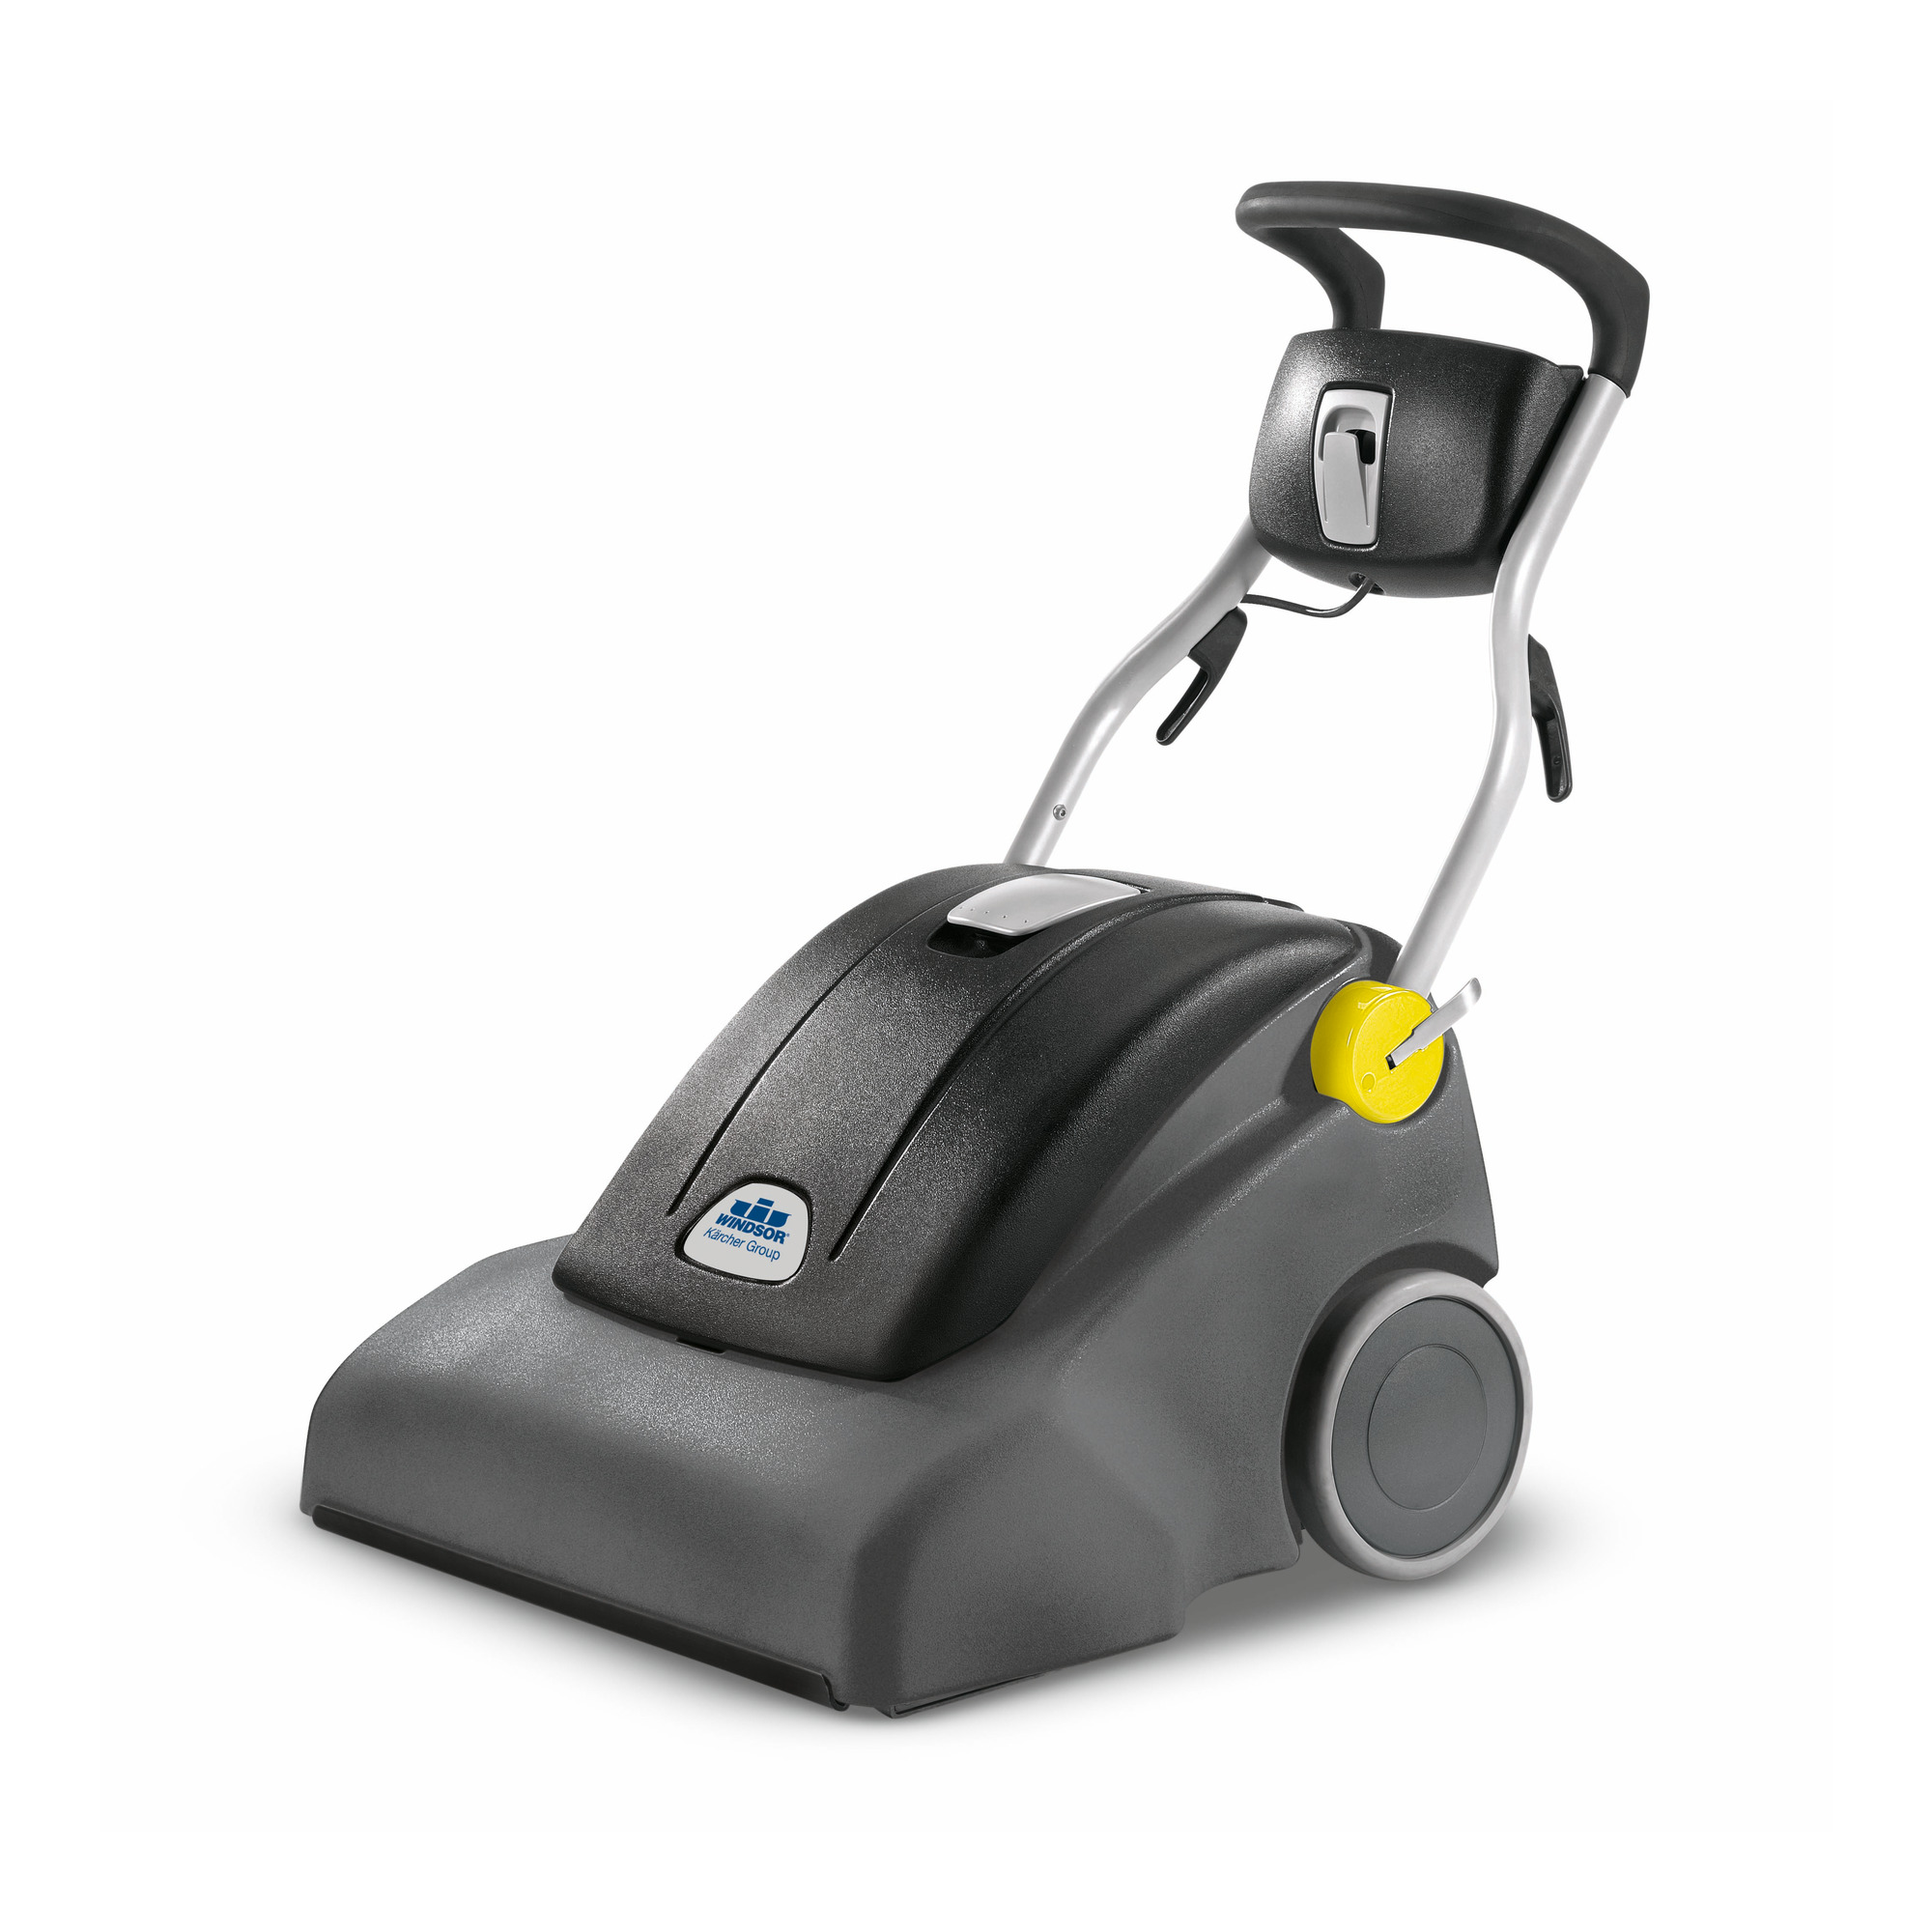 Karcher CV 66/2 Windsor NuWave 26in Wide Area Vacuum DEMO 10125330 FREE Shipping CRB Dual Counter Rotating Brushes (Newave) 3 Year Warranty 1.012-588.0